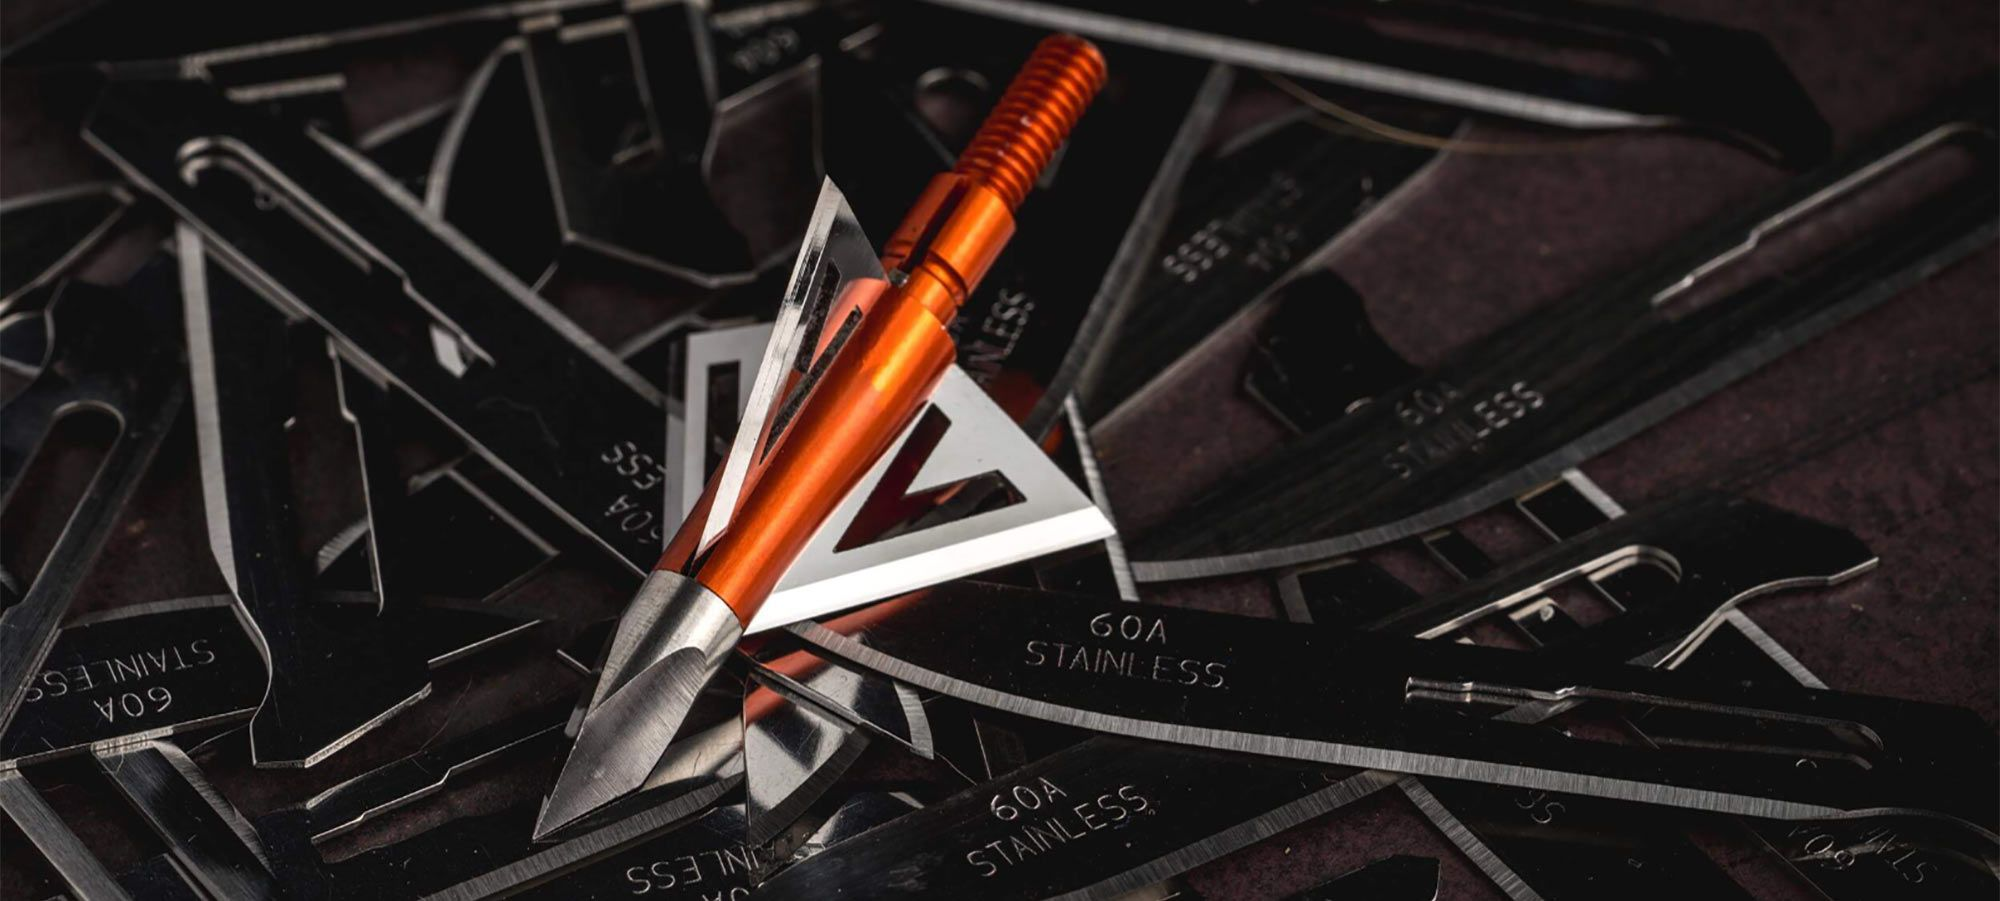 Best Mechanical Broadhead 2020 12 Hot New Broadheads for 2019 | Outdoor Life